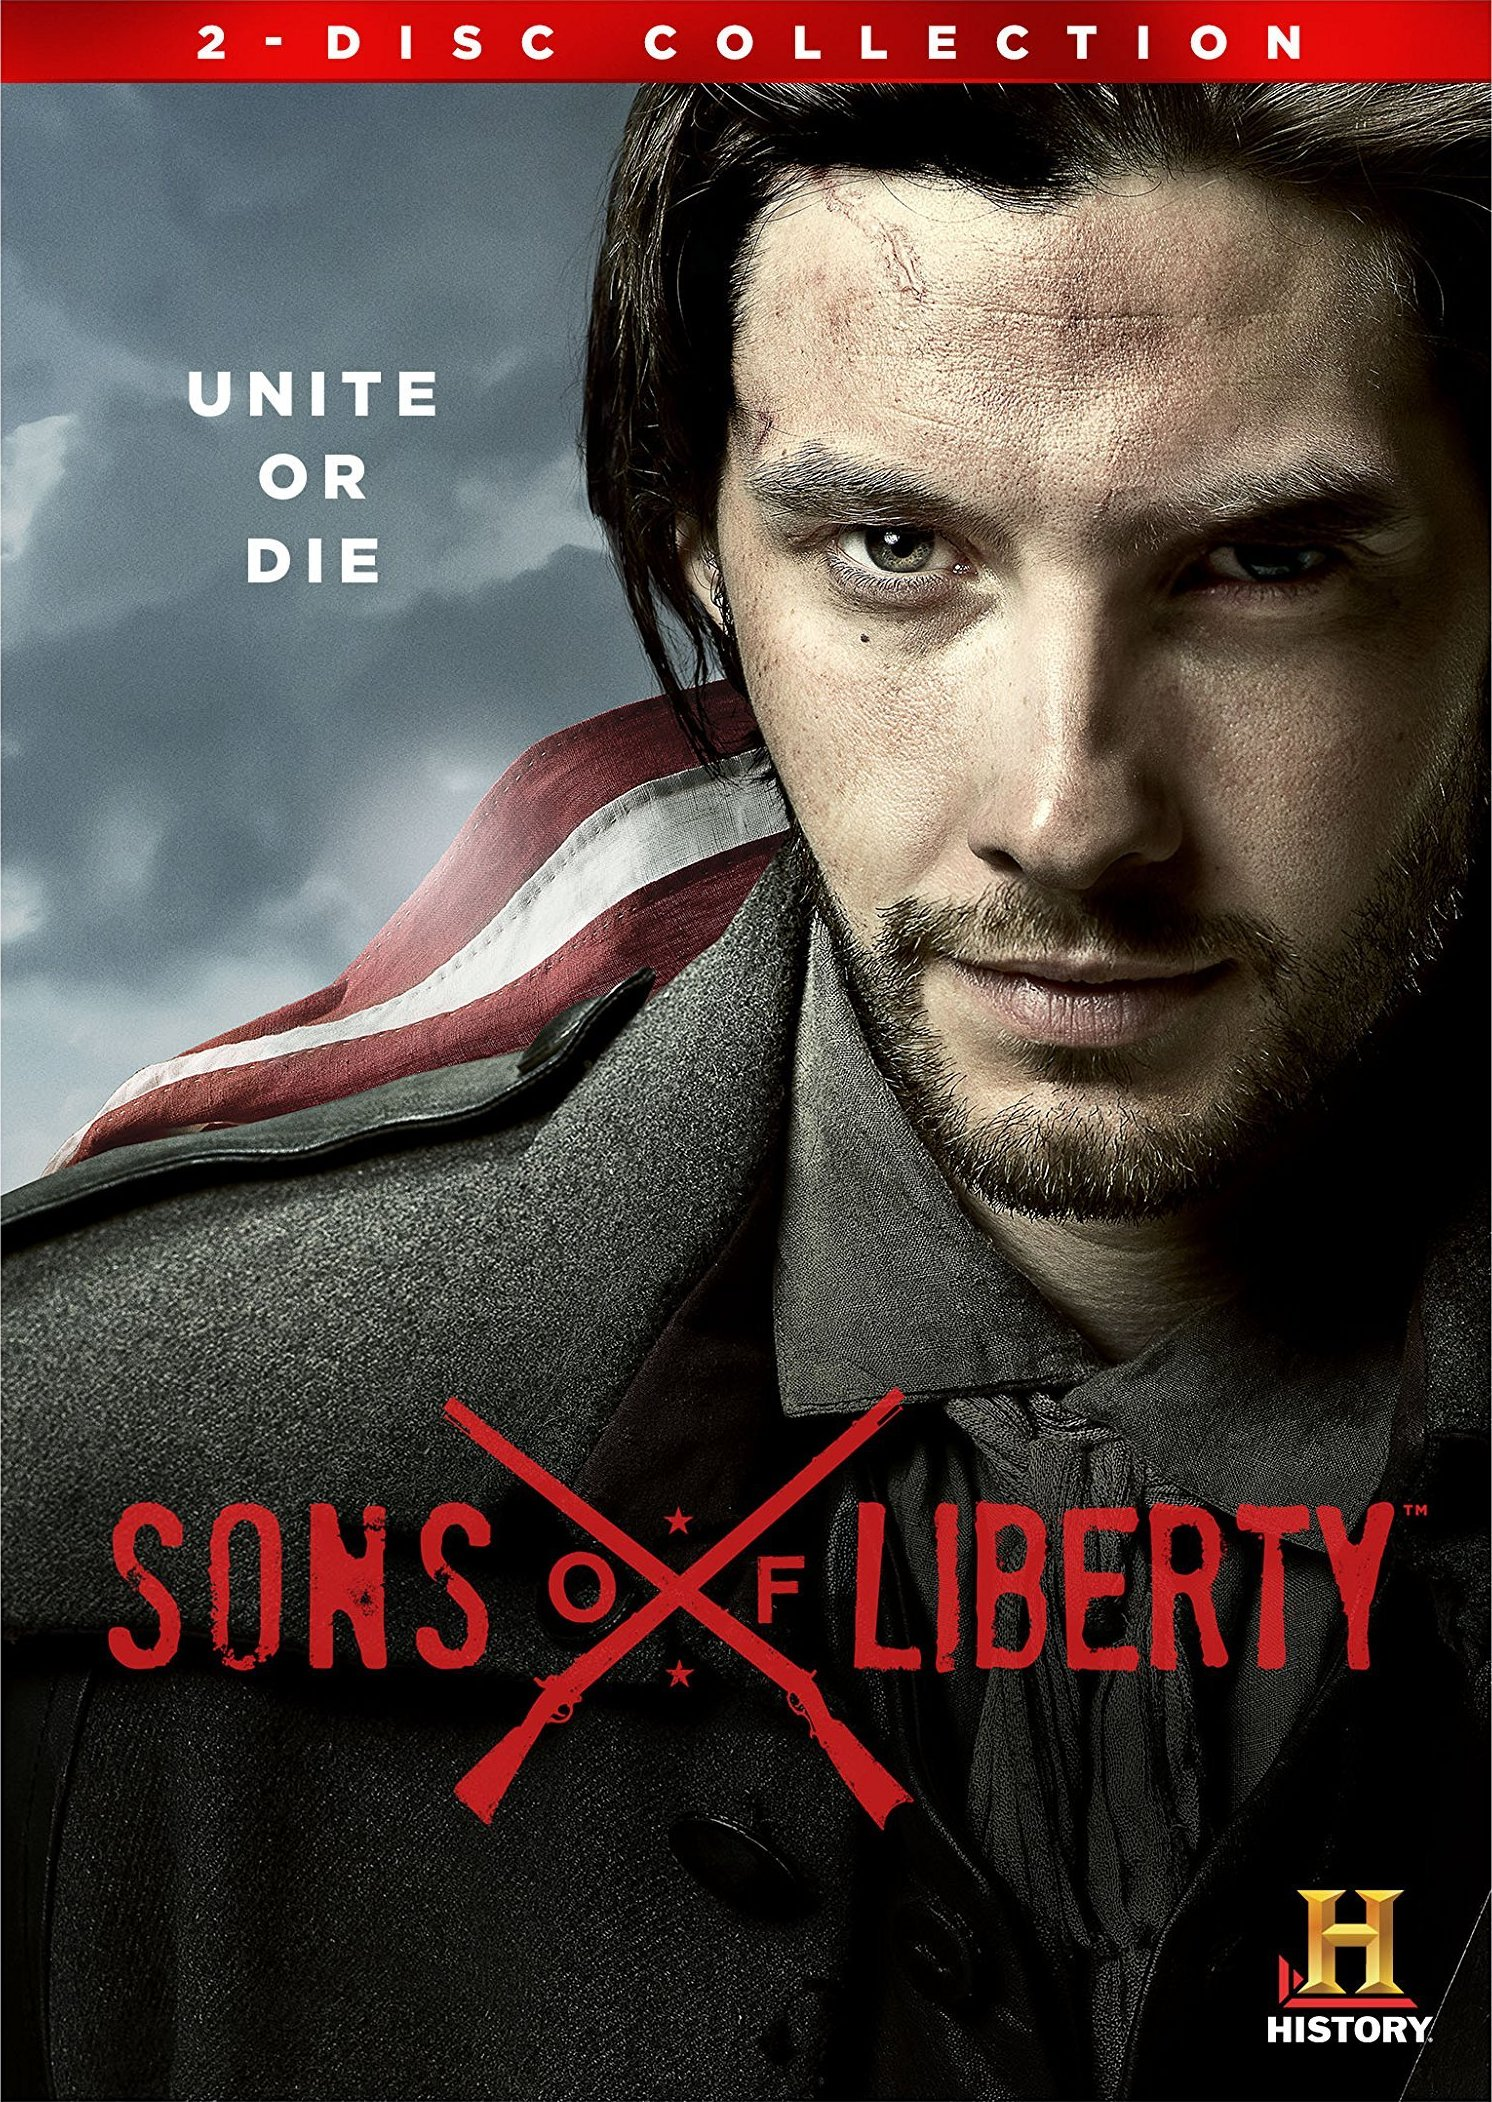 Sons_of_Liberty_Season_1_Blu-ray_front_cover.jpg